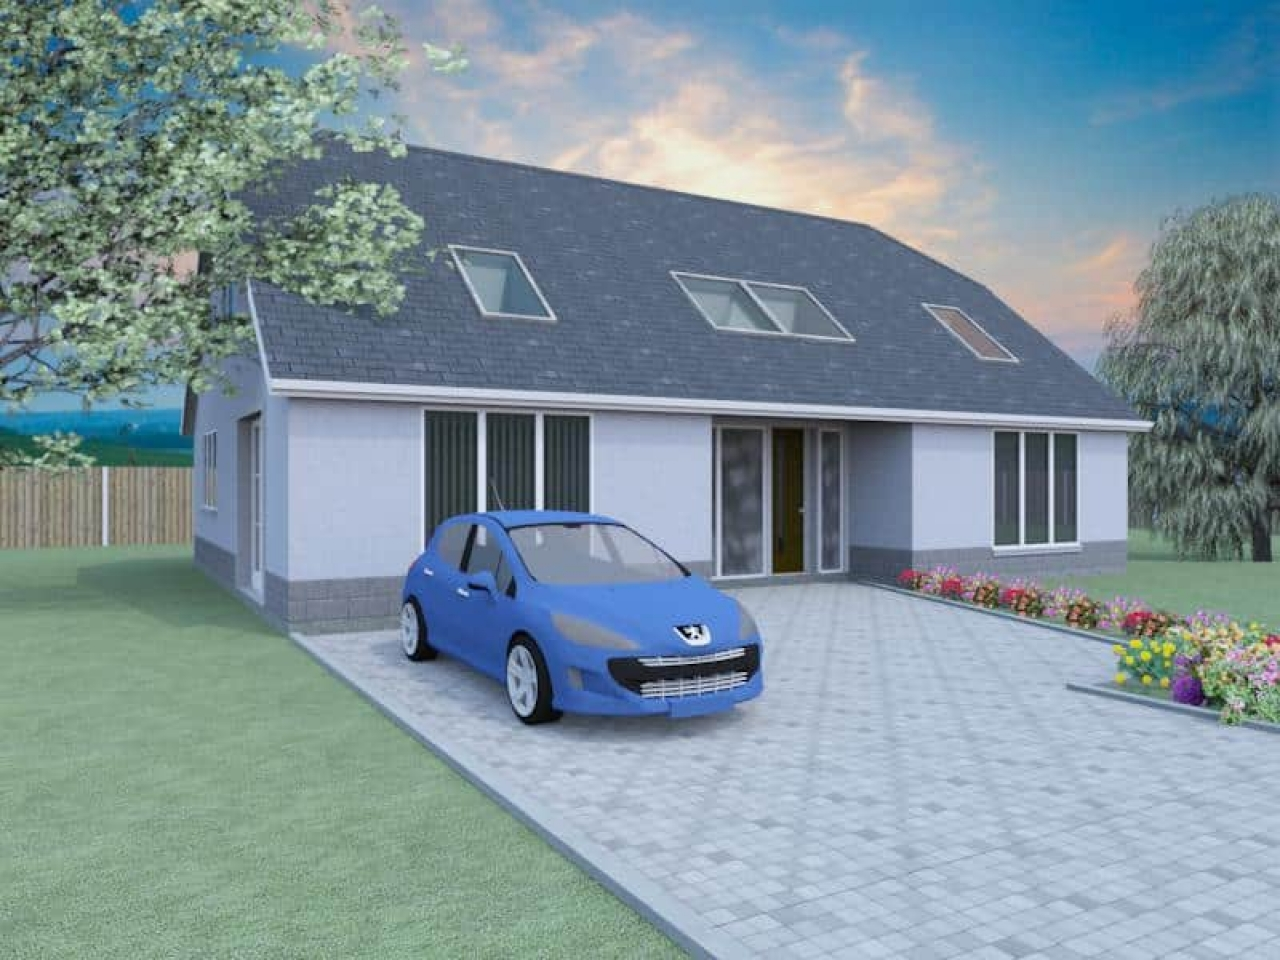 2 bedroom bungalows with dormer house plans 2 bedroom flat for 2 bedroom bungalow